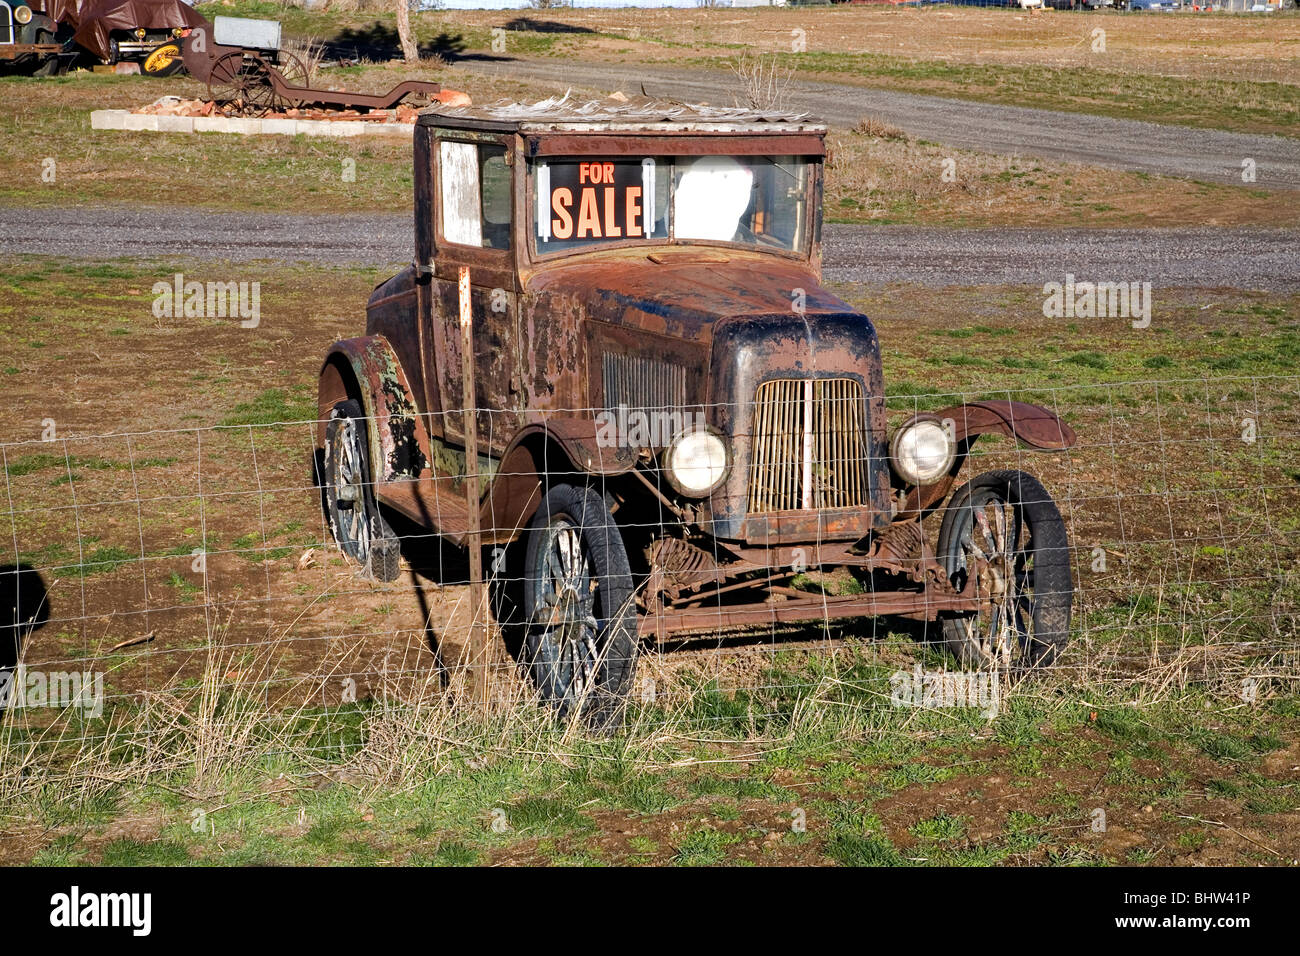 Old Cars Sale Stock Photos & Old Cars Sale Stock Images - Alamy